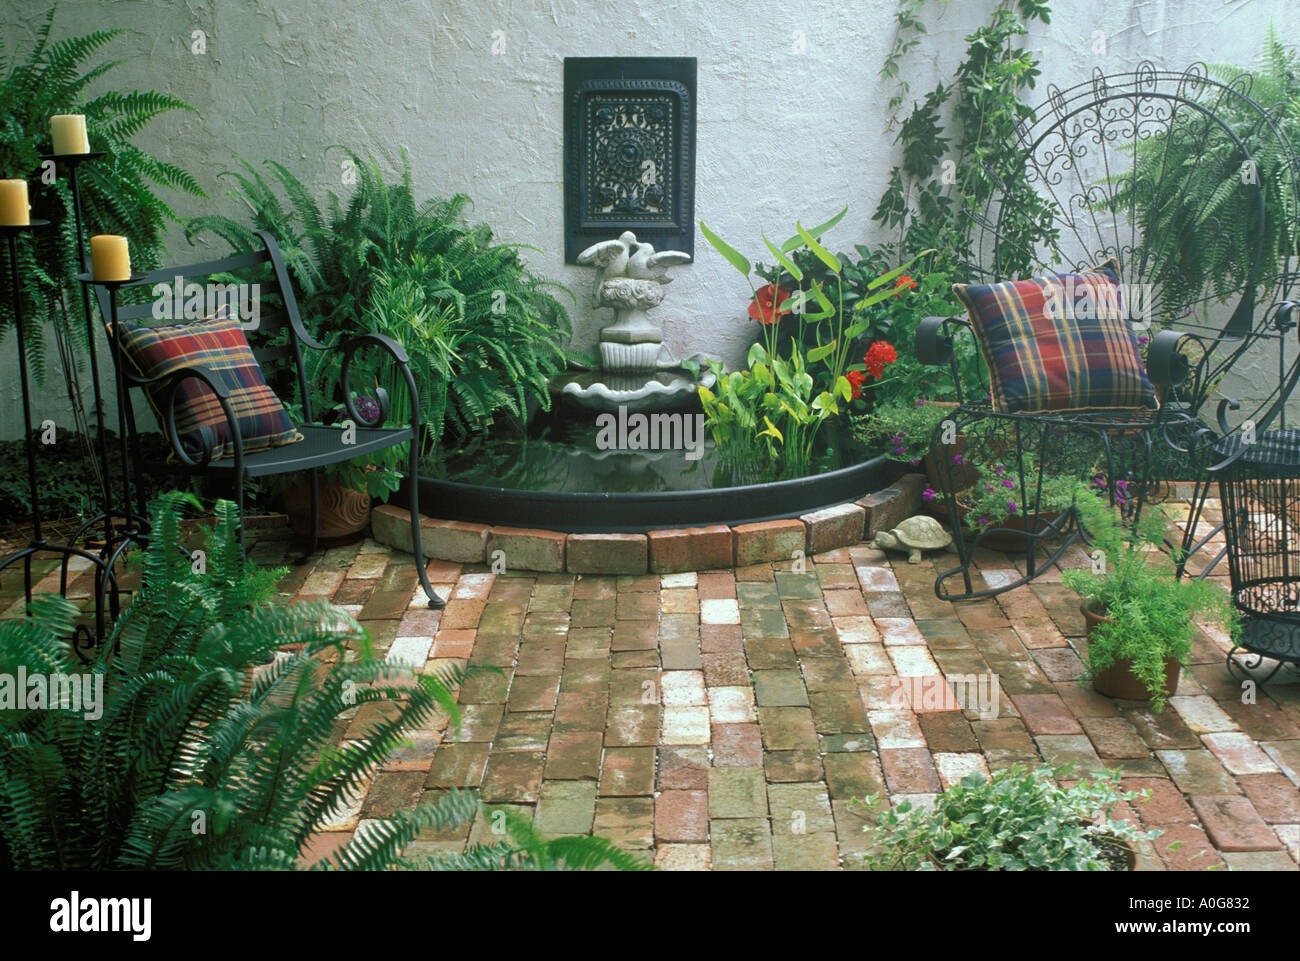 private enclosed brick courtyard with stucco wall, decorative pool